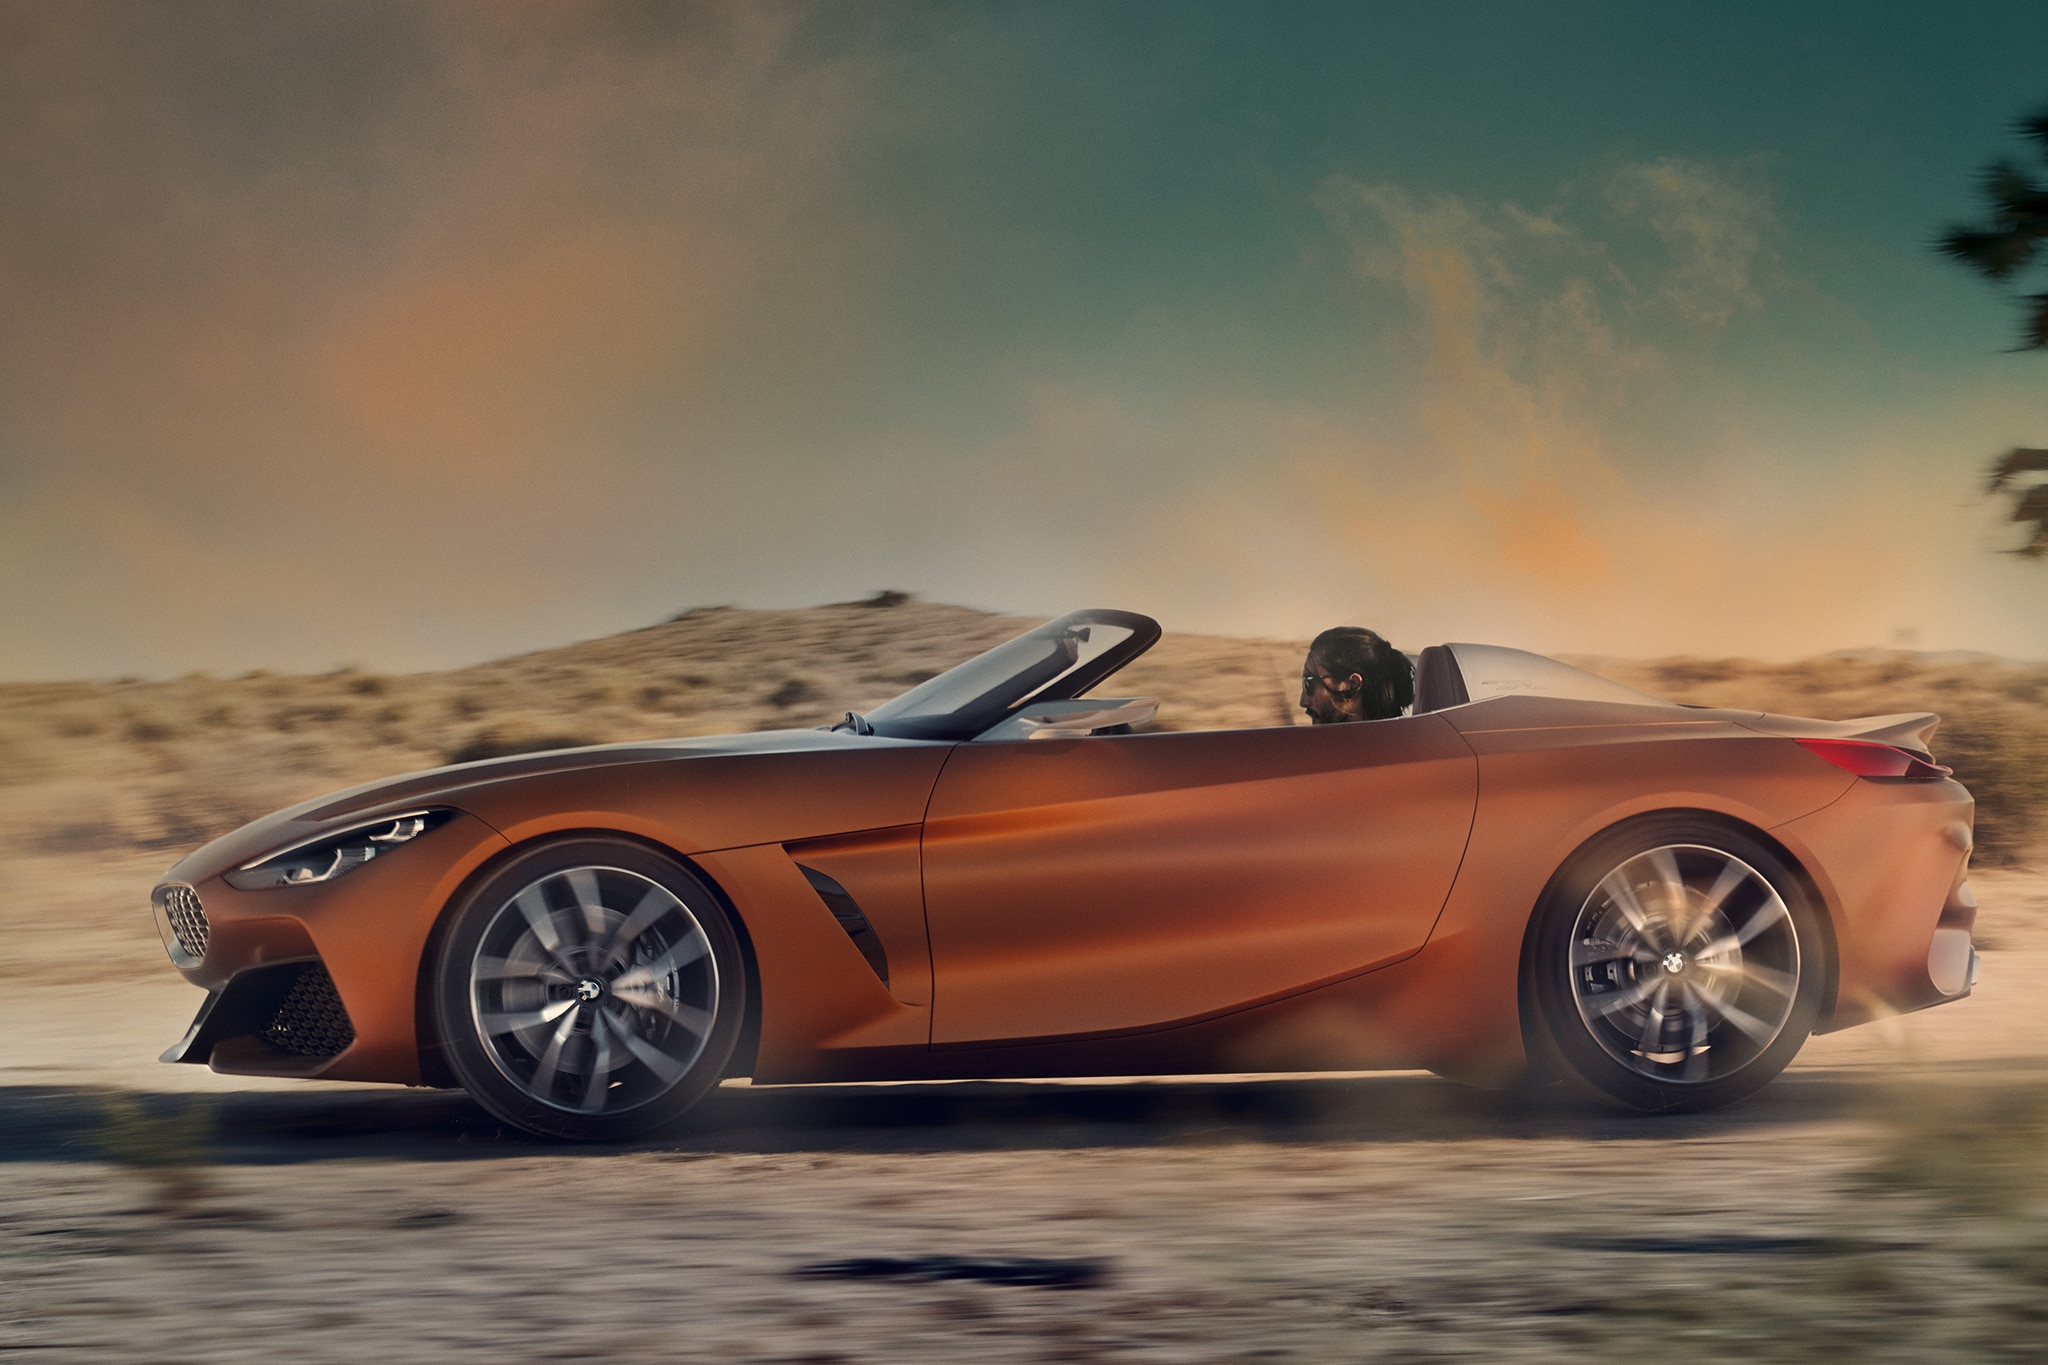 BMW Concept Z4 breaks cover before debut at Pebble Beach